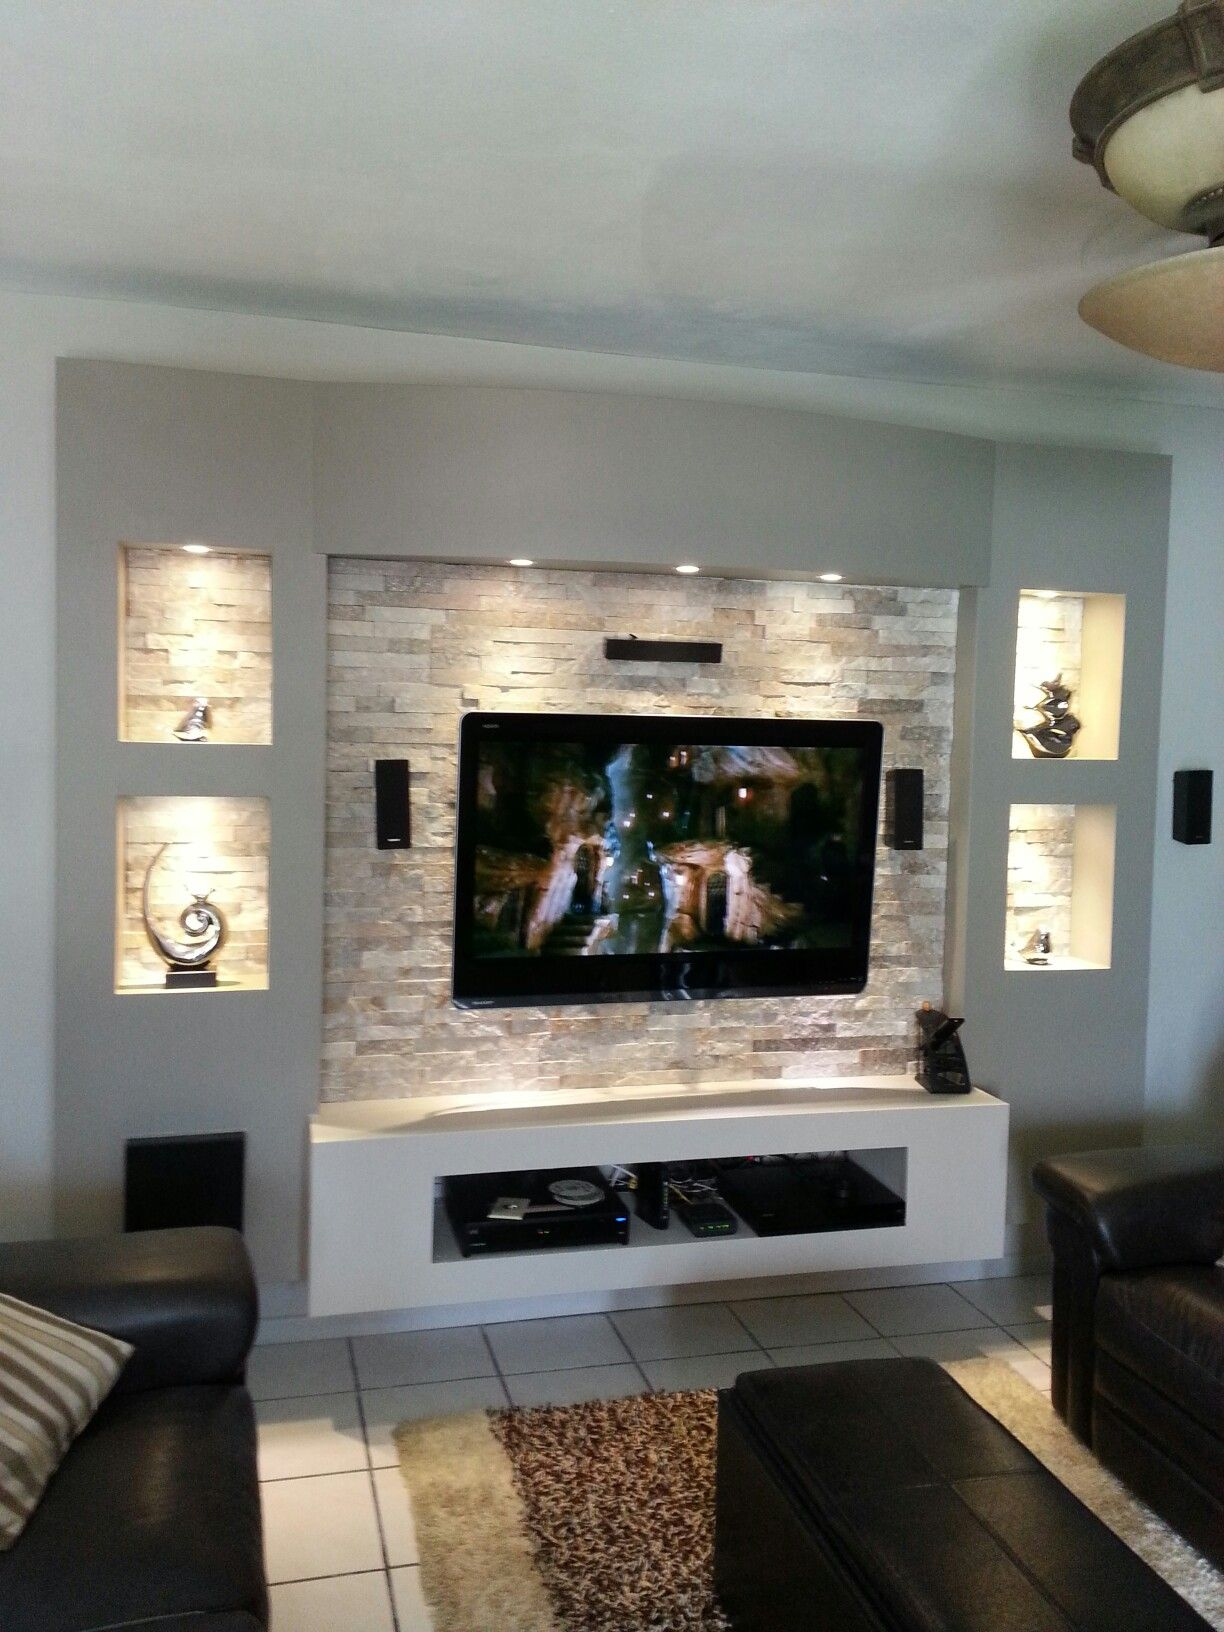 innovaci n tv unit my own projects in 2018 pinterest living room room and living room tv. Black Bedroom Furniture Sets. Home Design Ideas